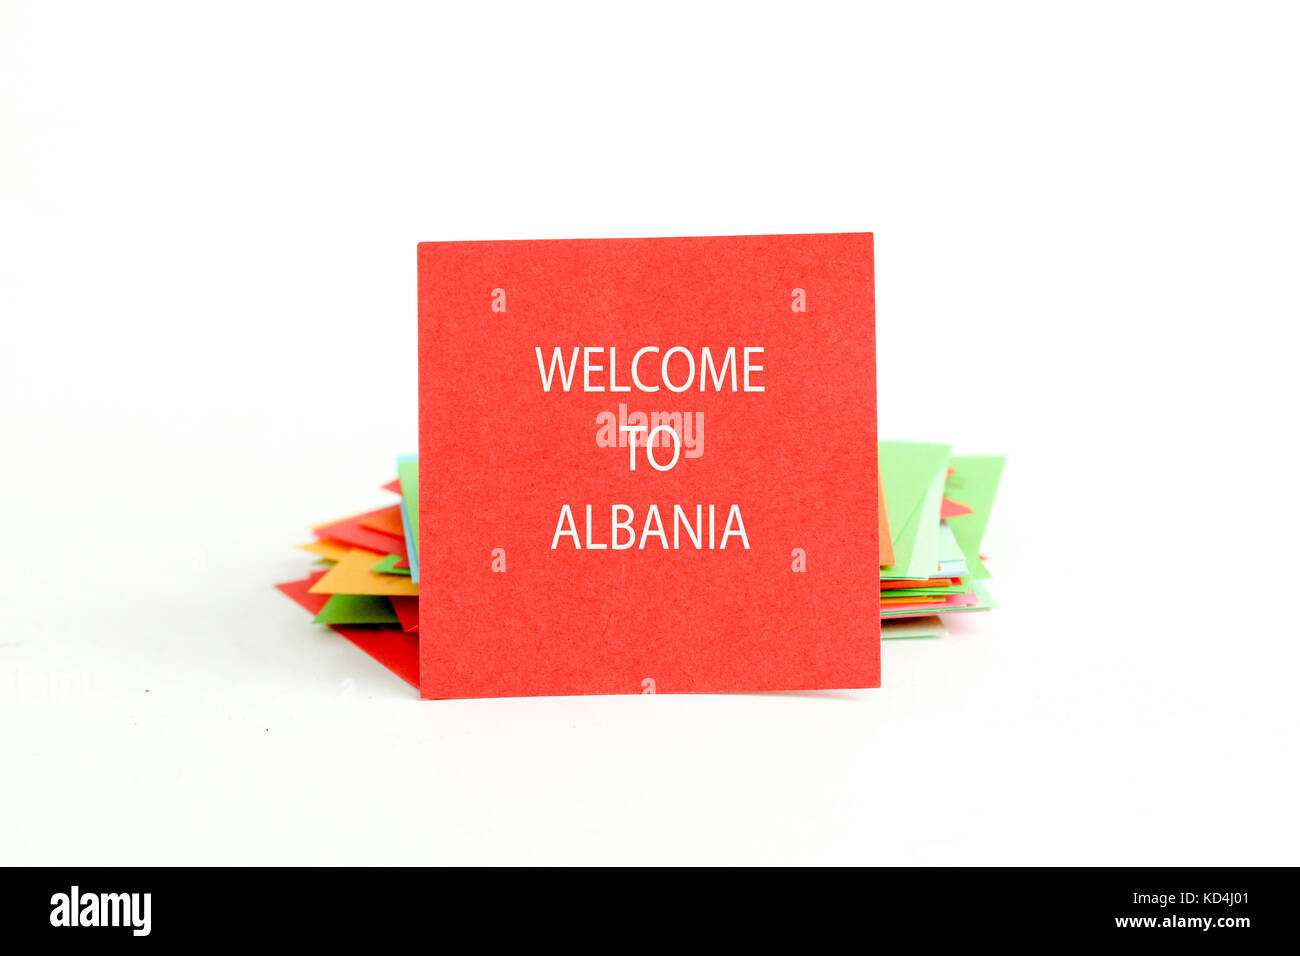 picture of a red note paper with text welcome to albania - Stock Image